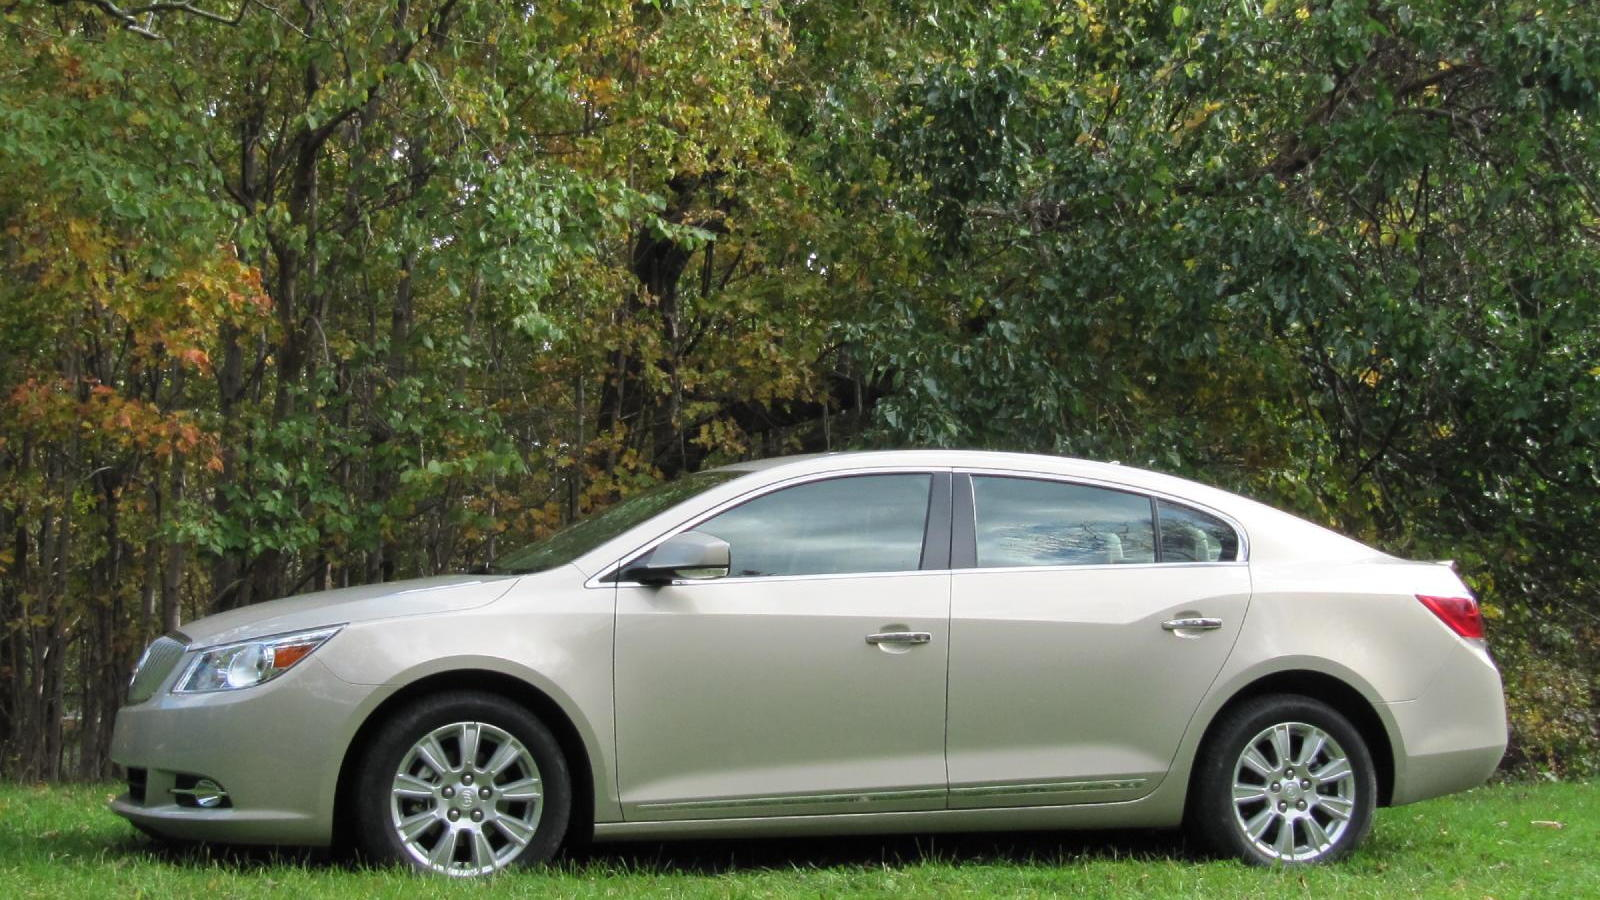 hight resolution of 2012 buick lacrosse with eassist catskill mountains october 2011